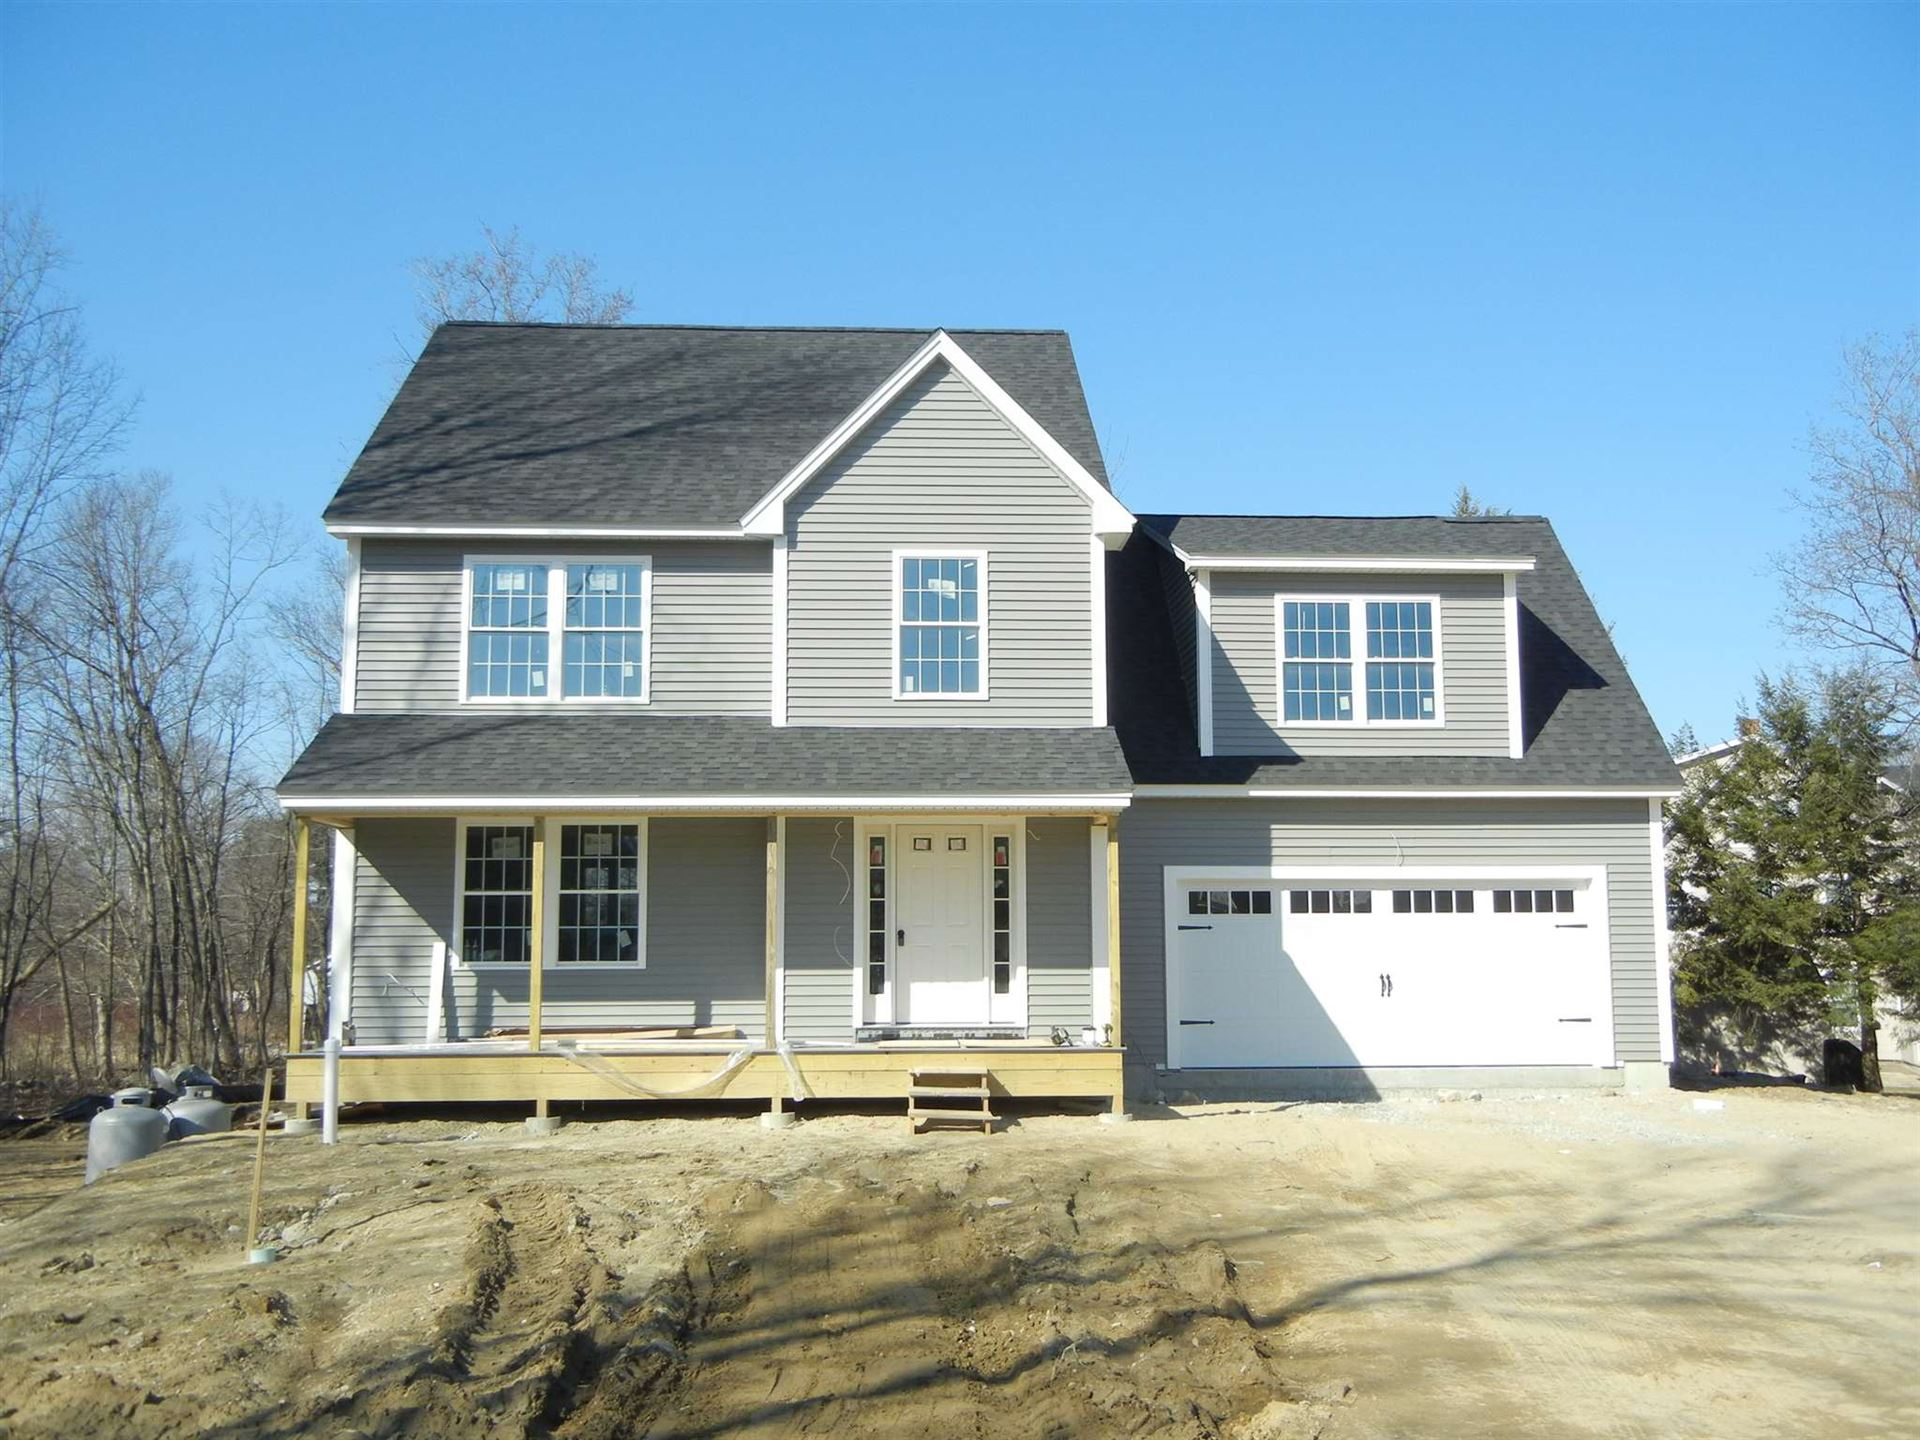 6 Wright Road #6, Milford, NH 03055 - #: 4780534